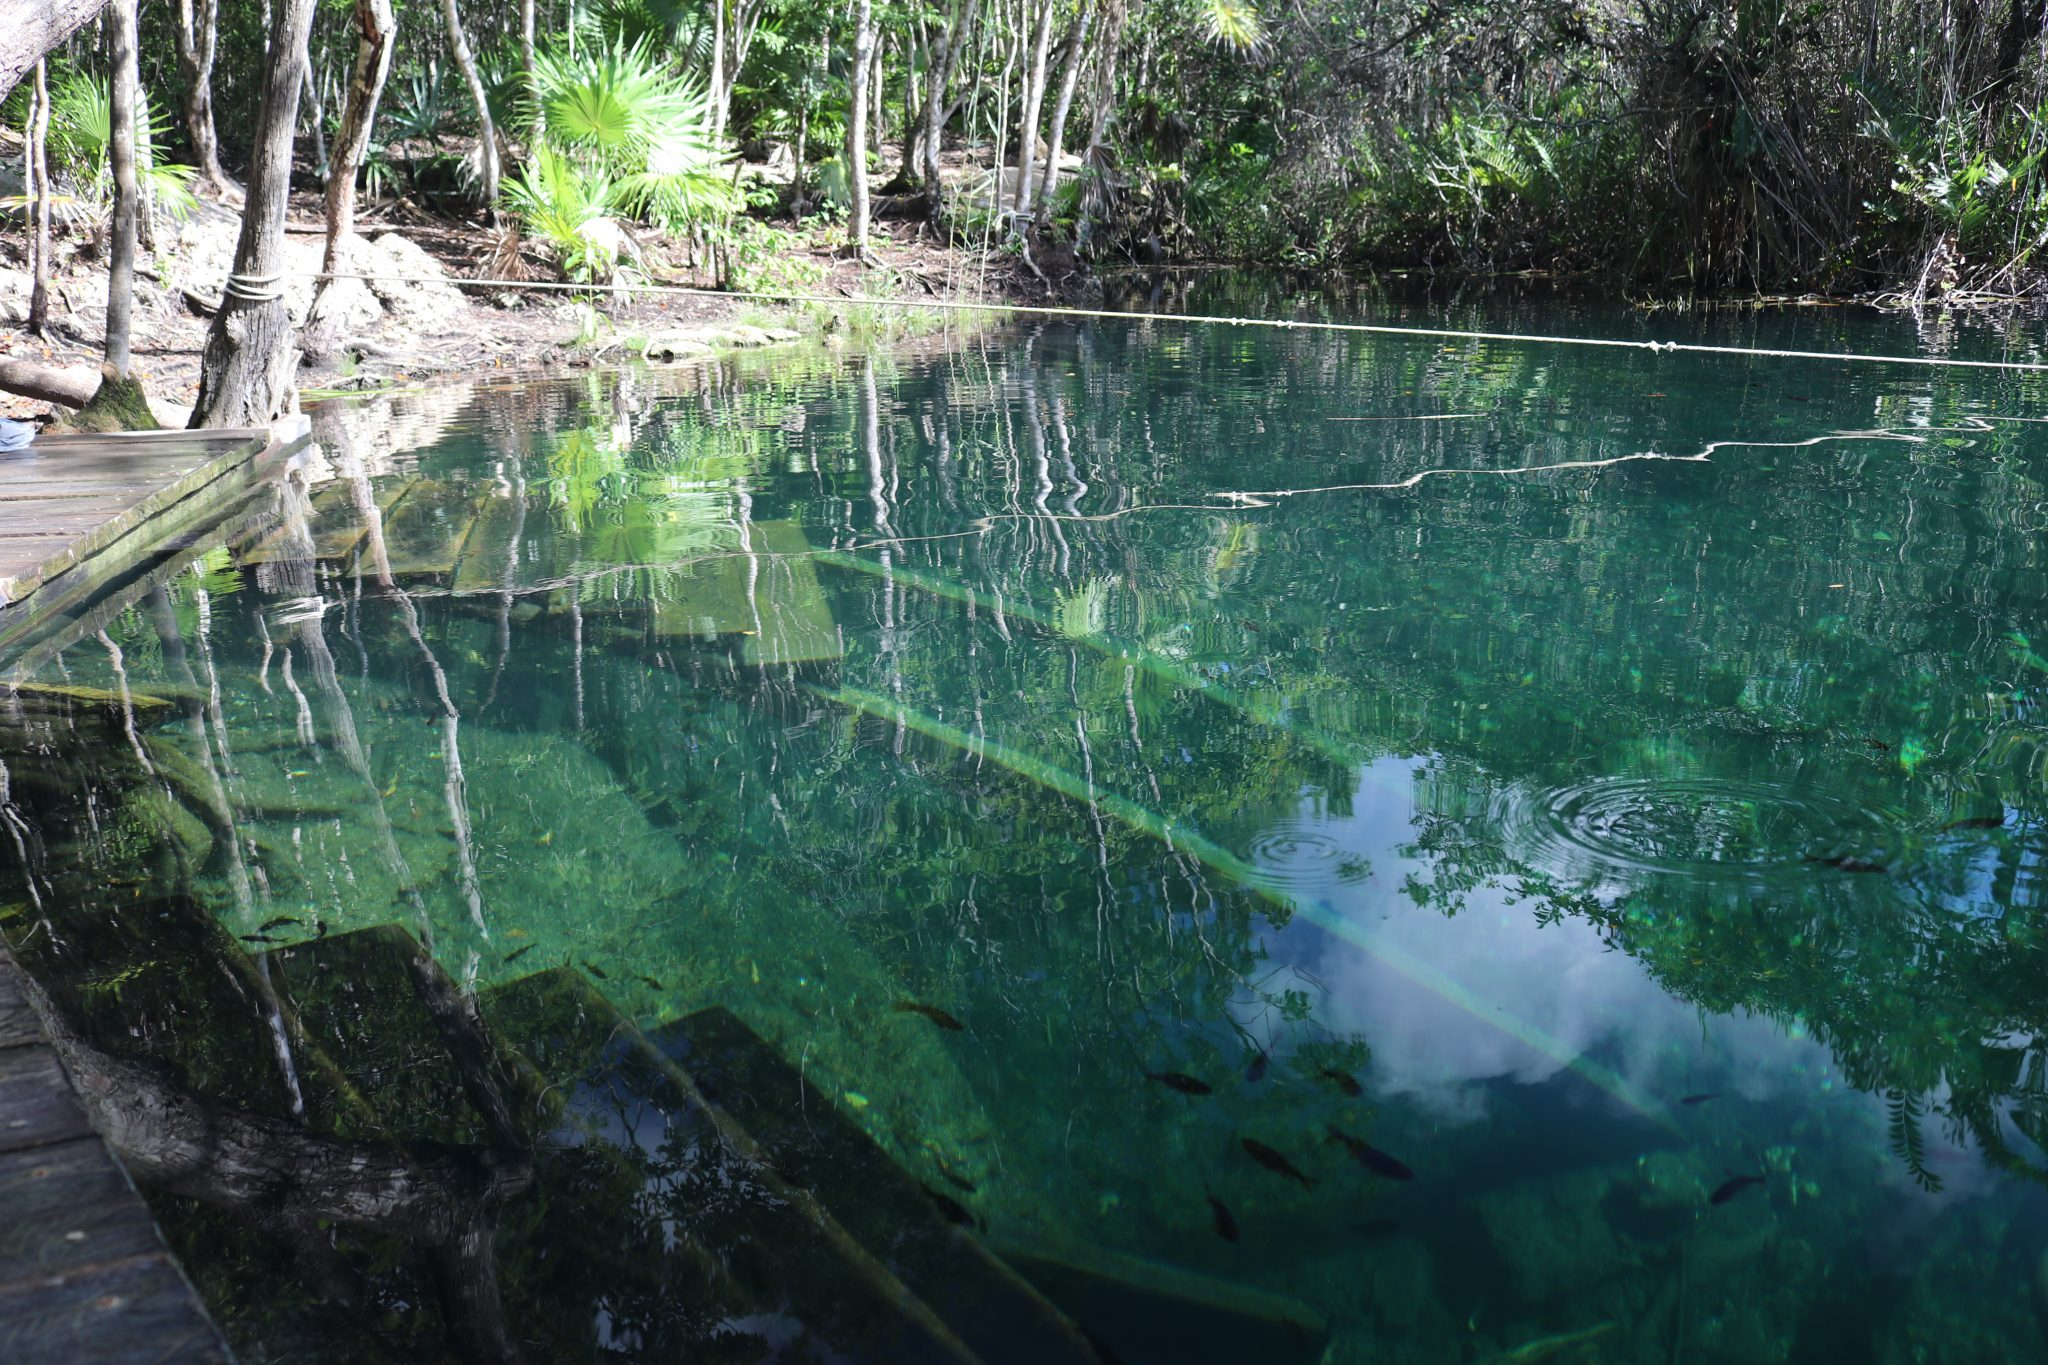 Escondido Cenote